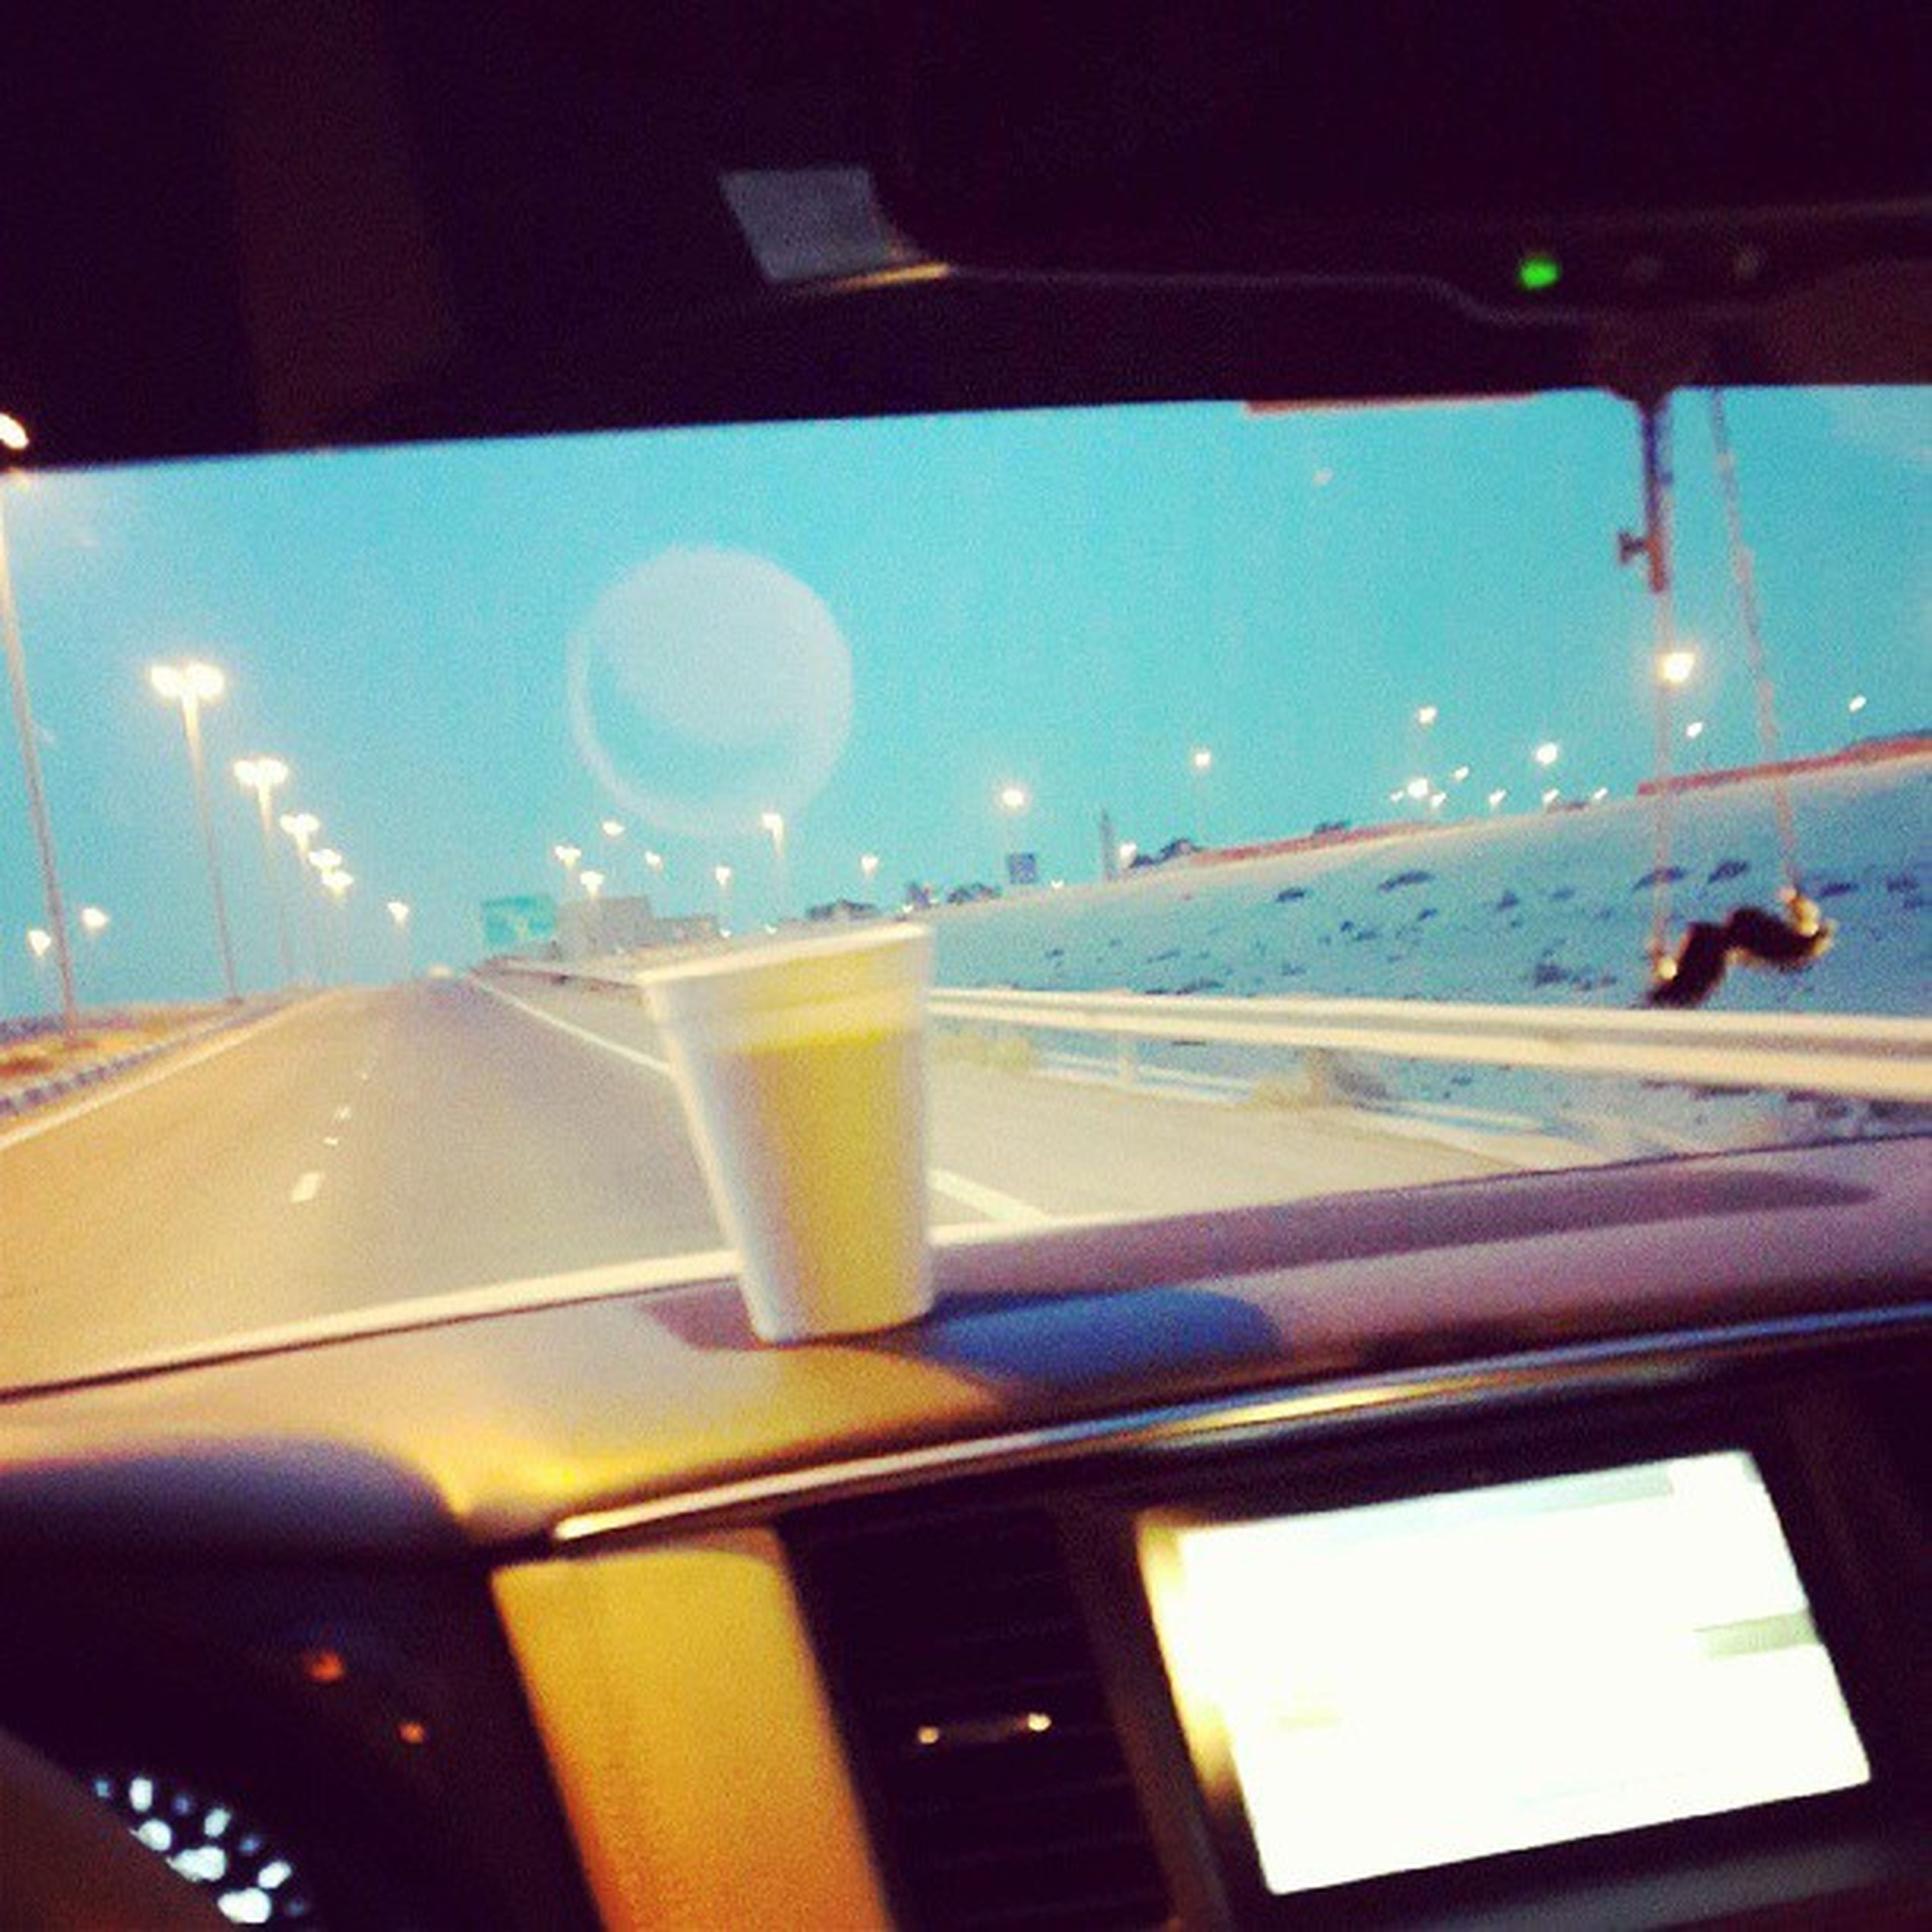 transportation, vehicle interior, mode of transport, car, glass - material, land vehicle, transparent, car interior, windshield, window, air vehicle, airplane, illuminated, indoors, travel, part of, on the move, night, flying, cropped